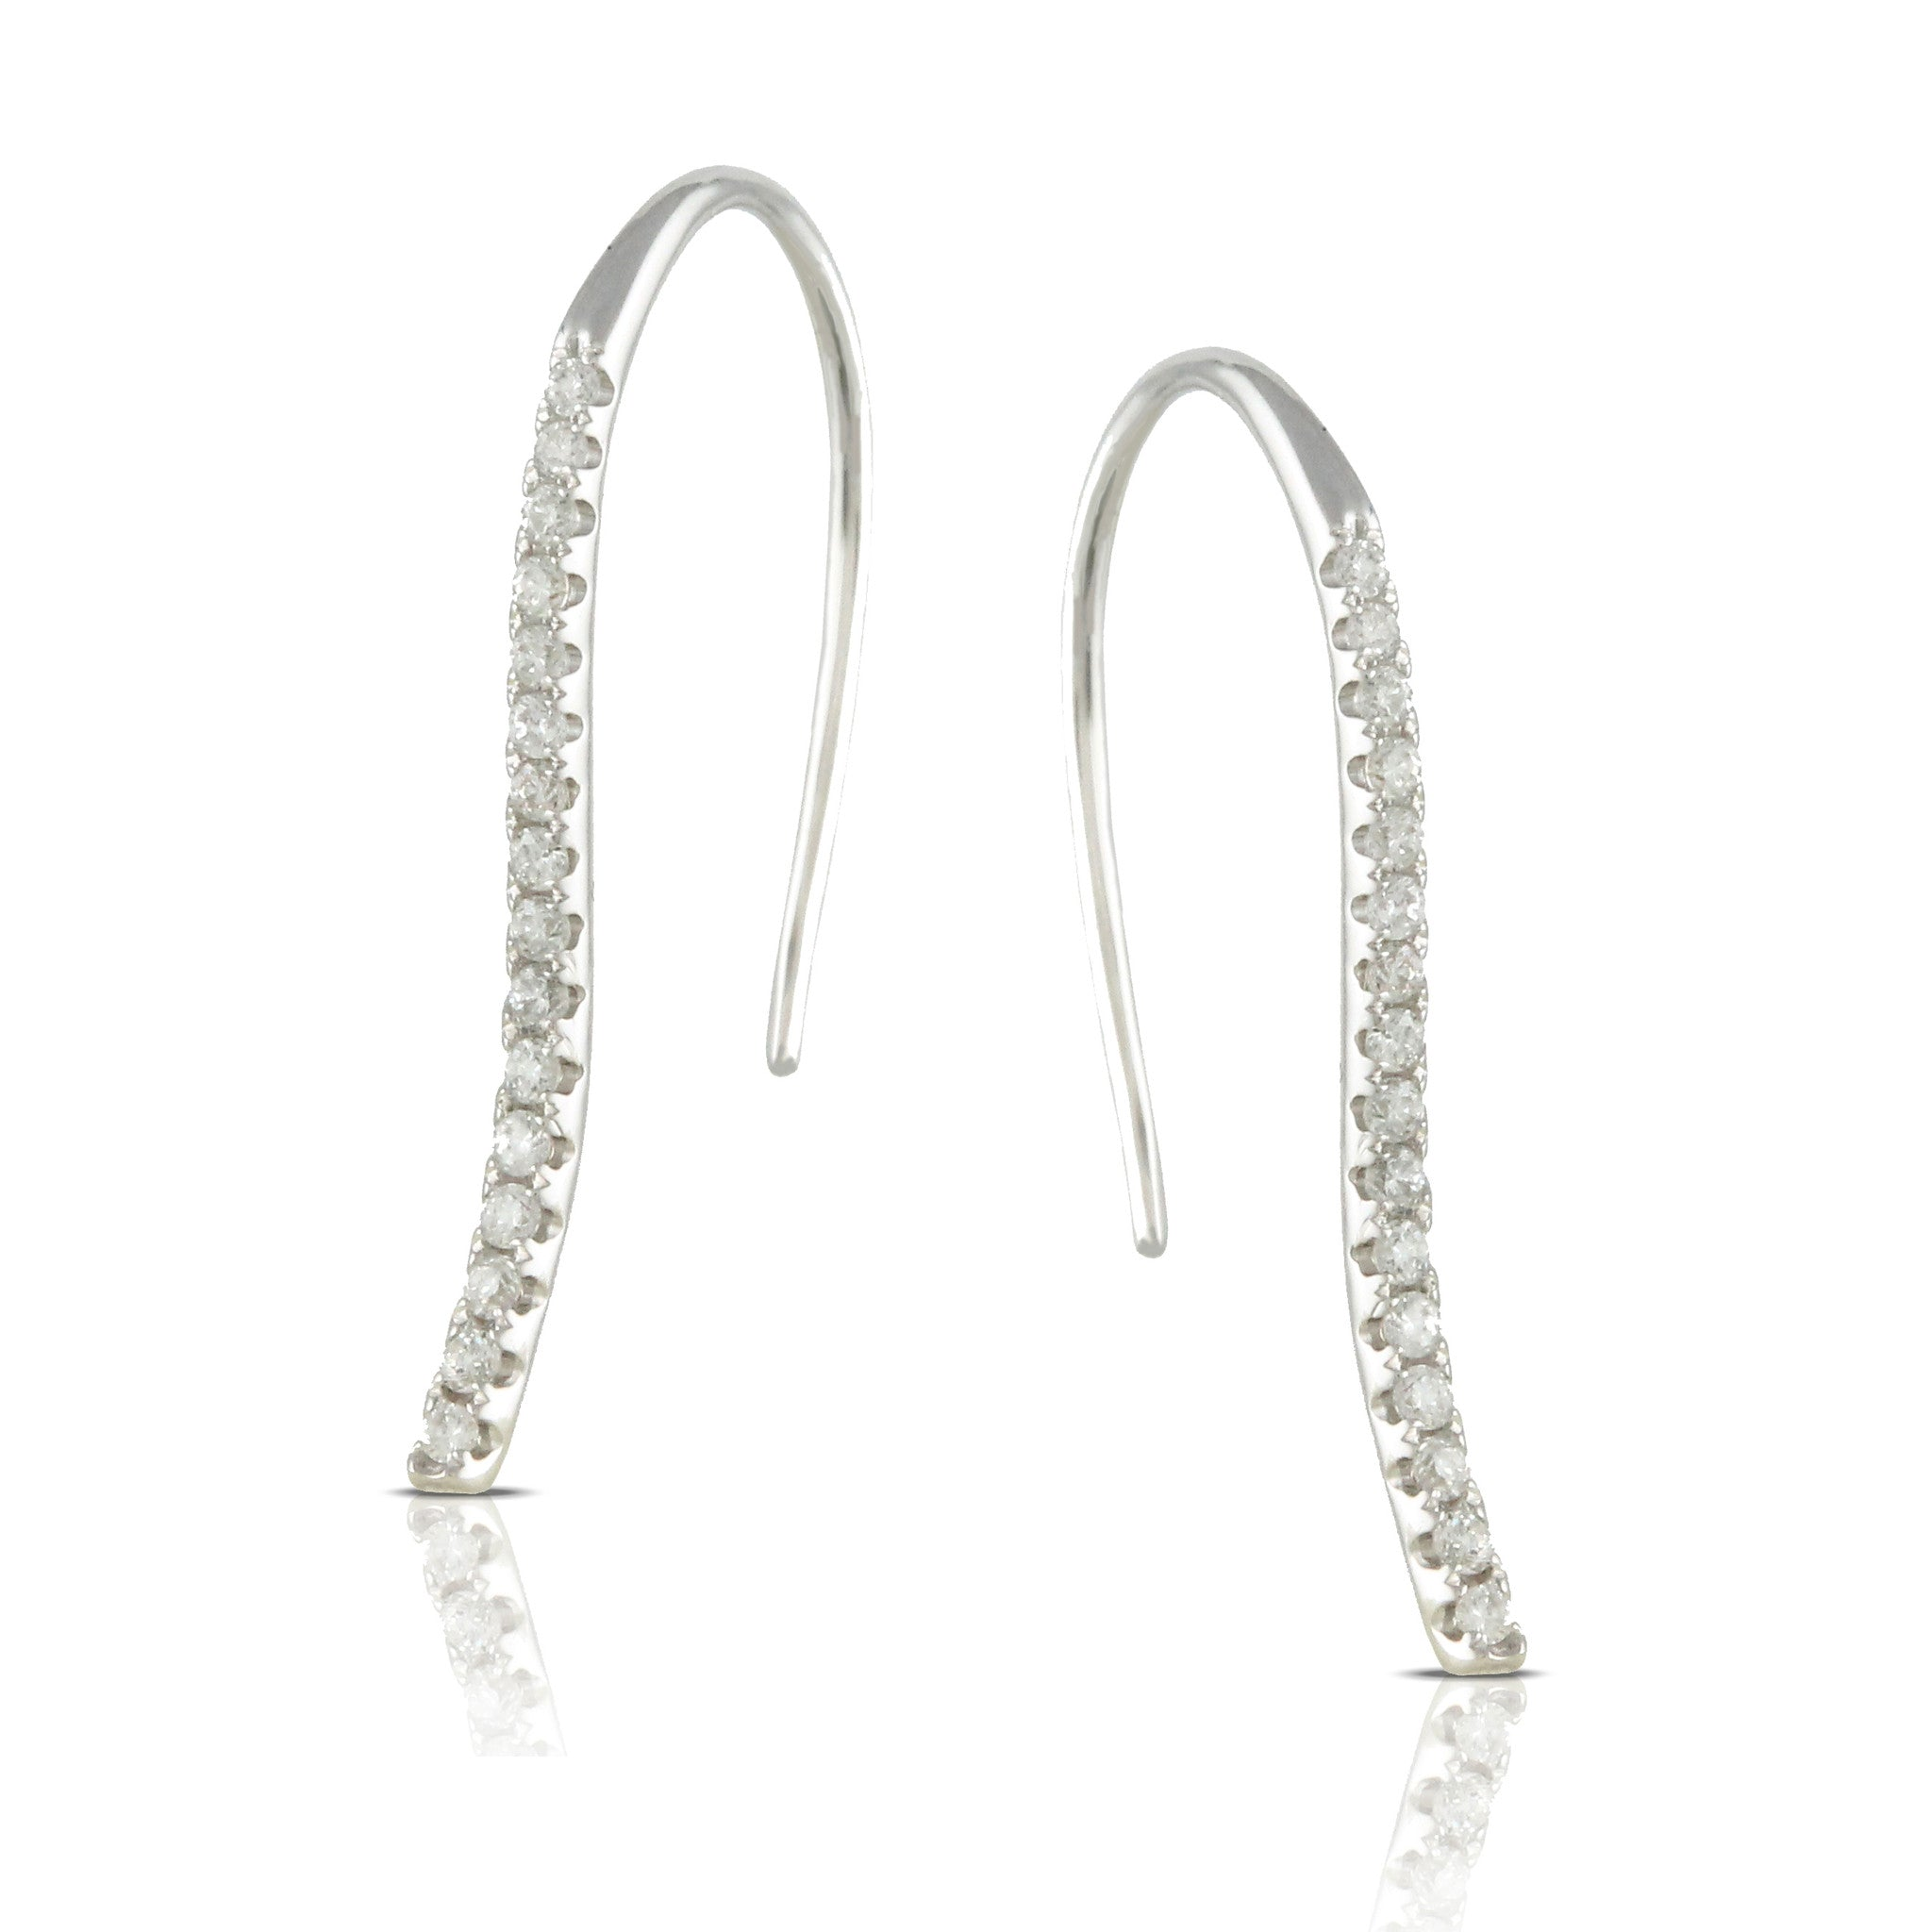 Doves Ladies' 18k White Gold Diamond Pave Earrings in a Drop Style by Jewelry Designer Doron Paloma